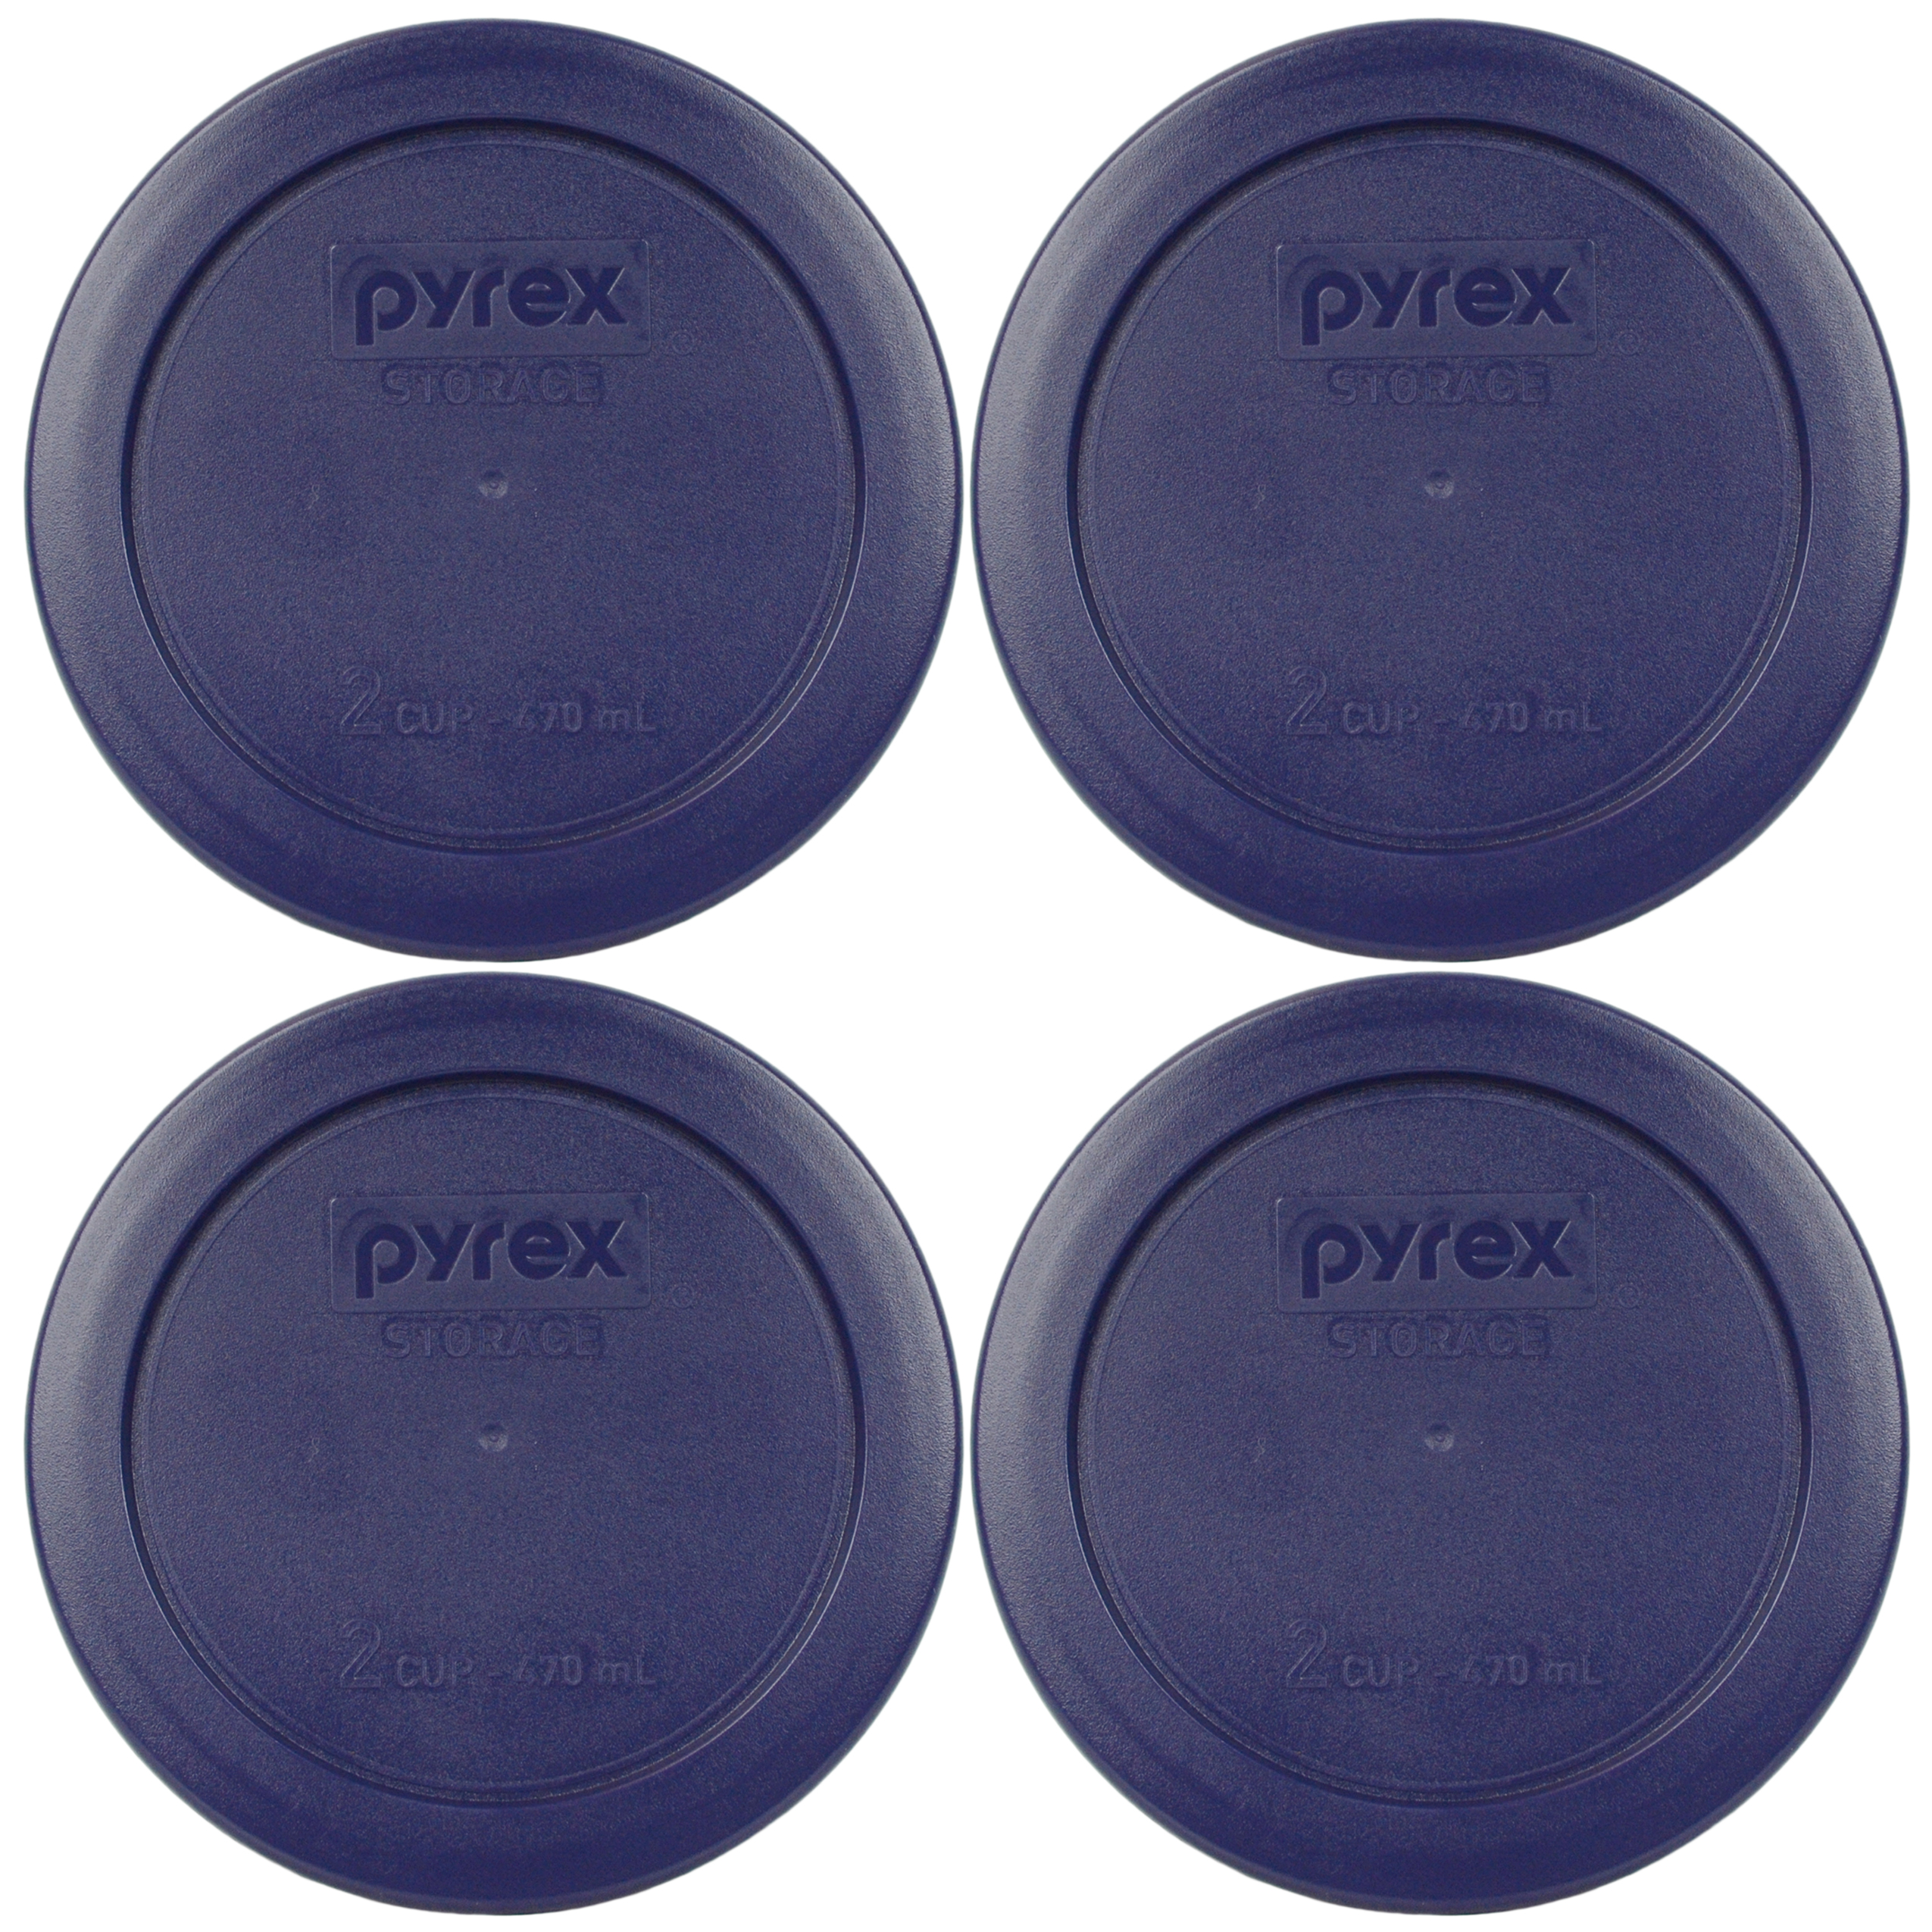 Pyrex Replacement Lid 7200-PC Blue Round Plastic Cover (4-Pack) for Pyrex 7200 2-Cup Bowl (Sold Separately)